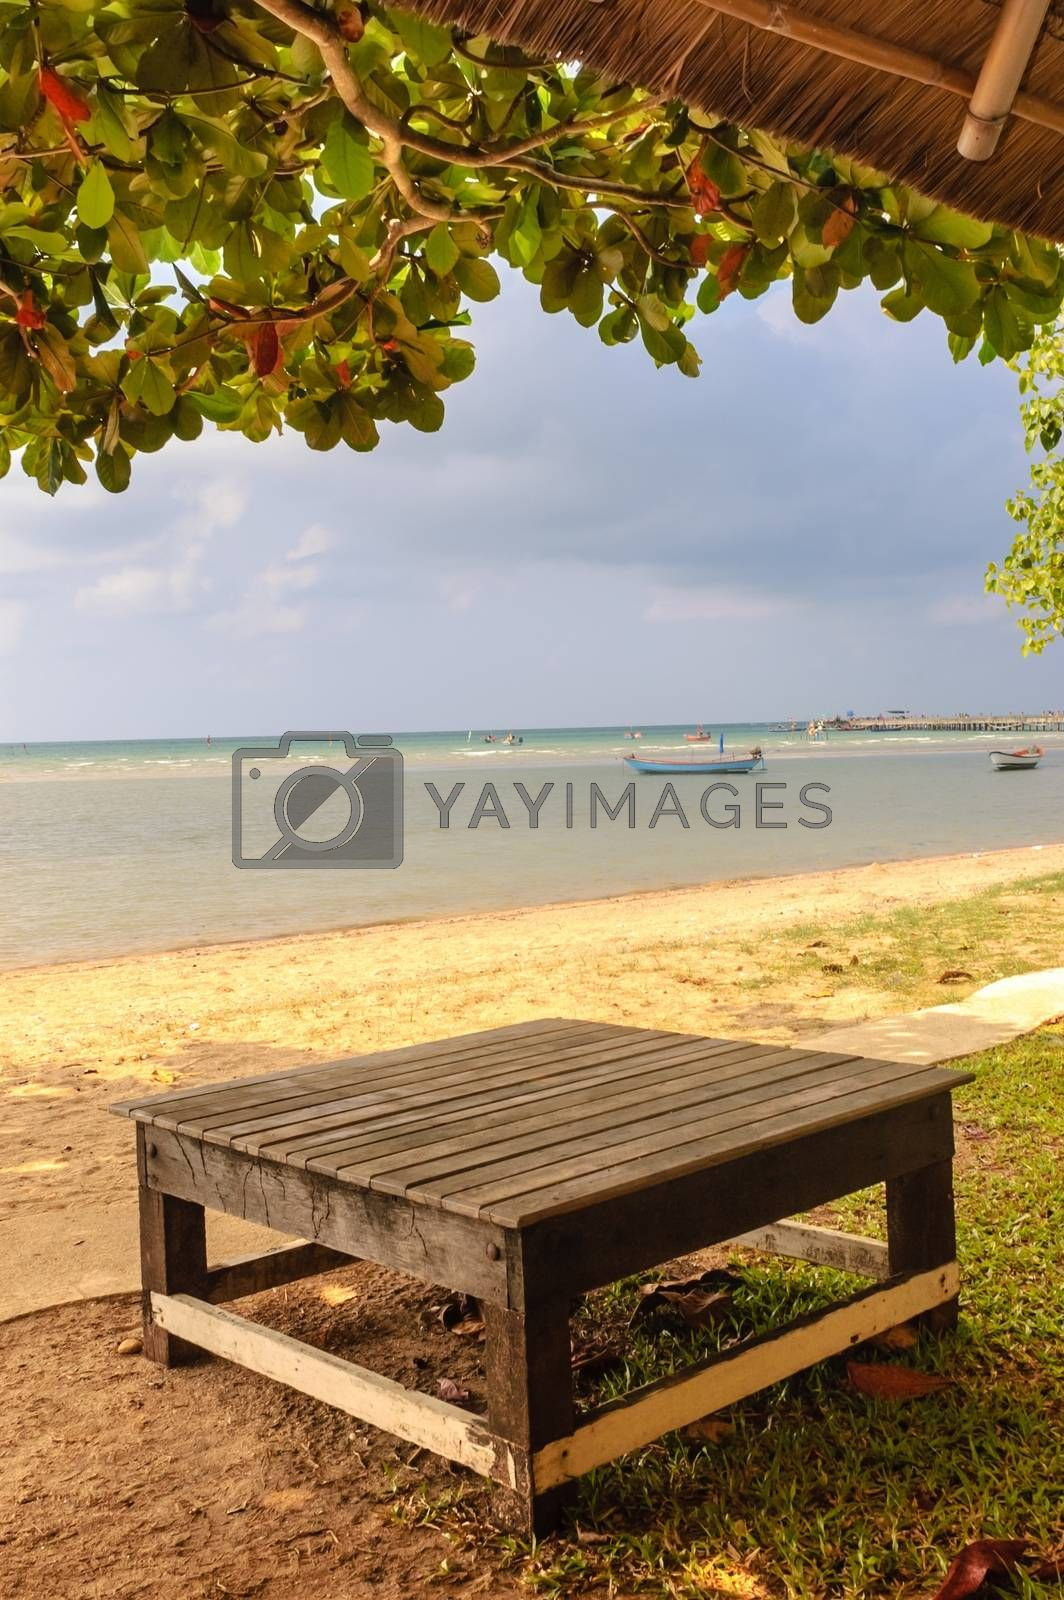 Relax on the beach wooden table in tree shade.